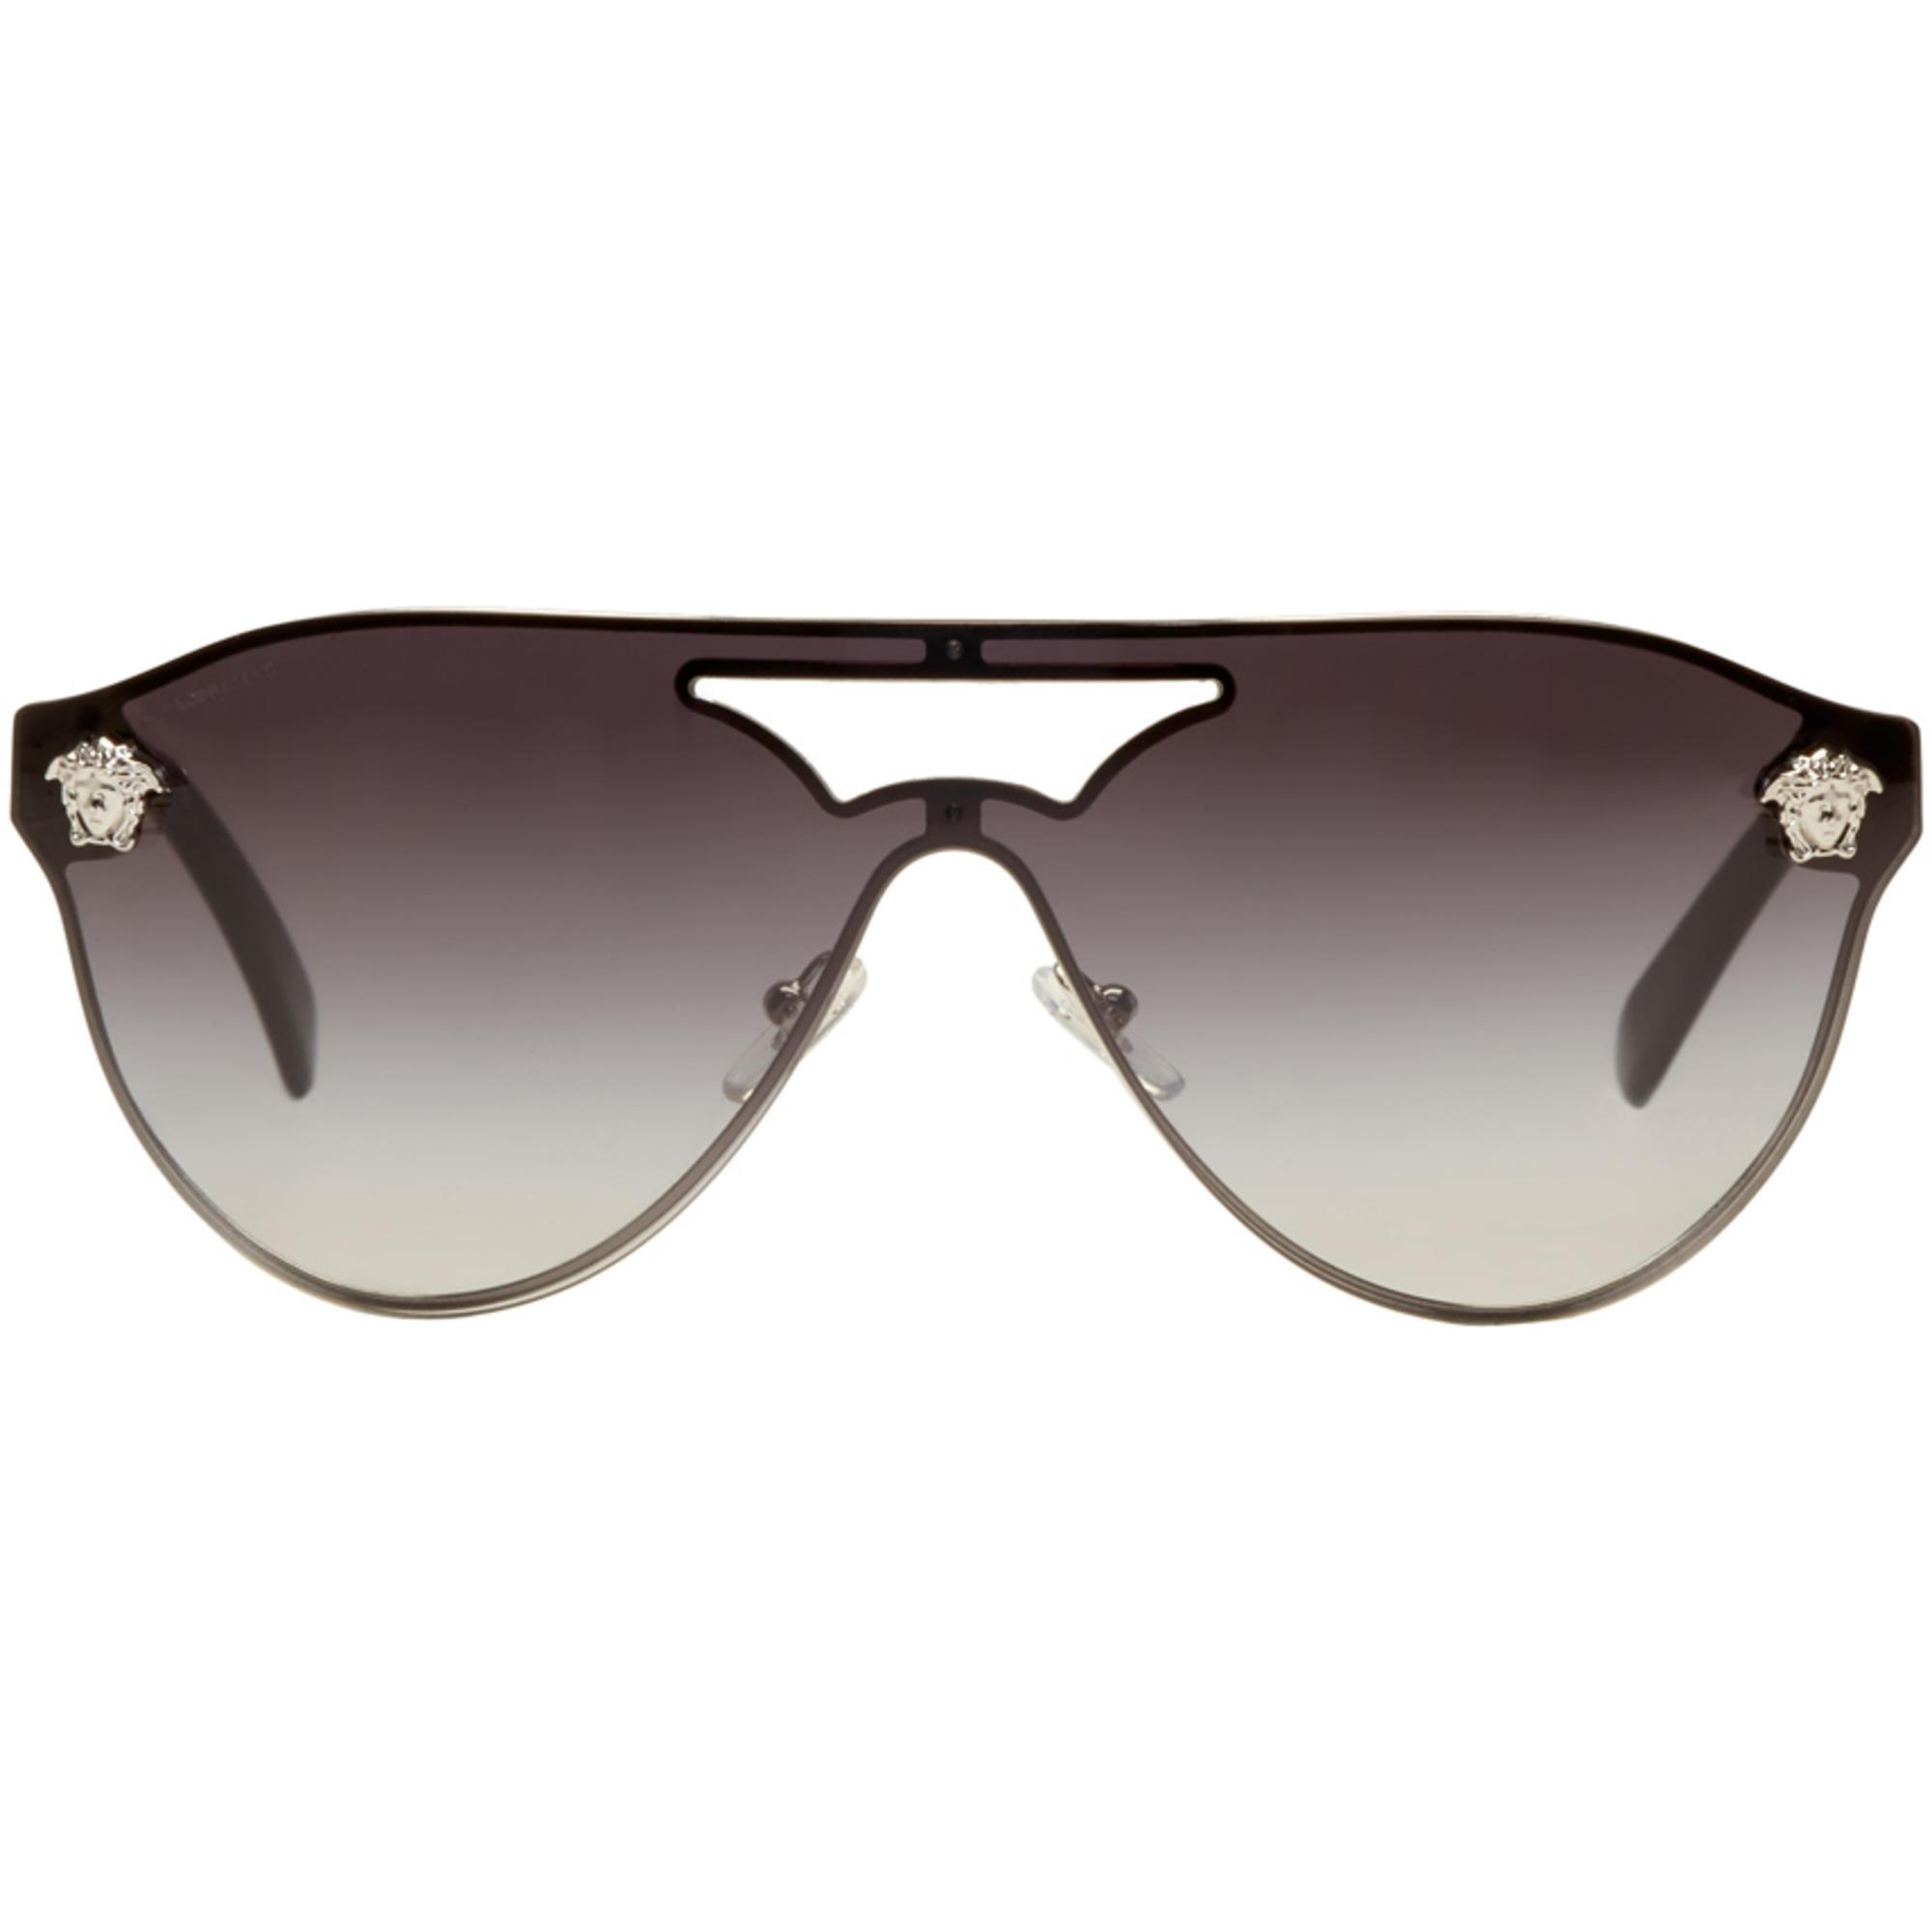 260f2830fe4 Lyst - Versace Silver And Black Medusa Visor Sunglasses in Metallic ...